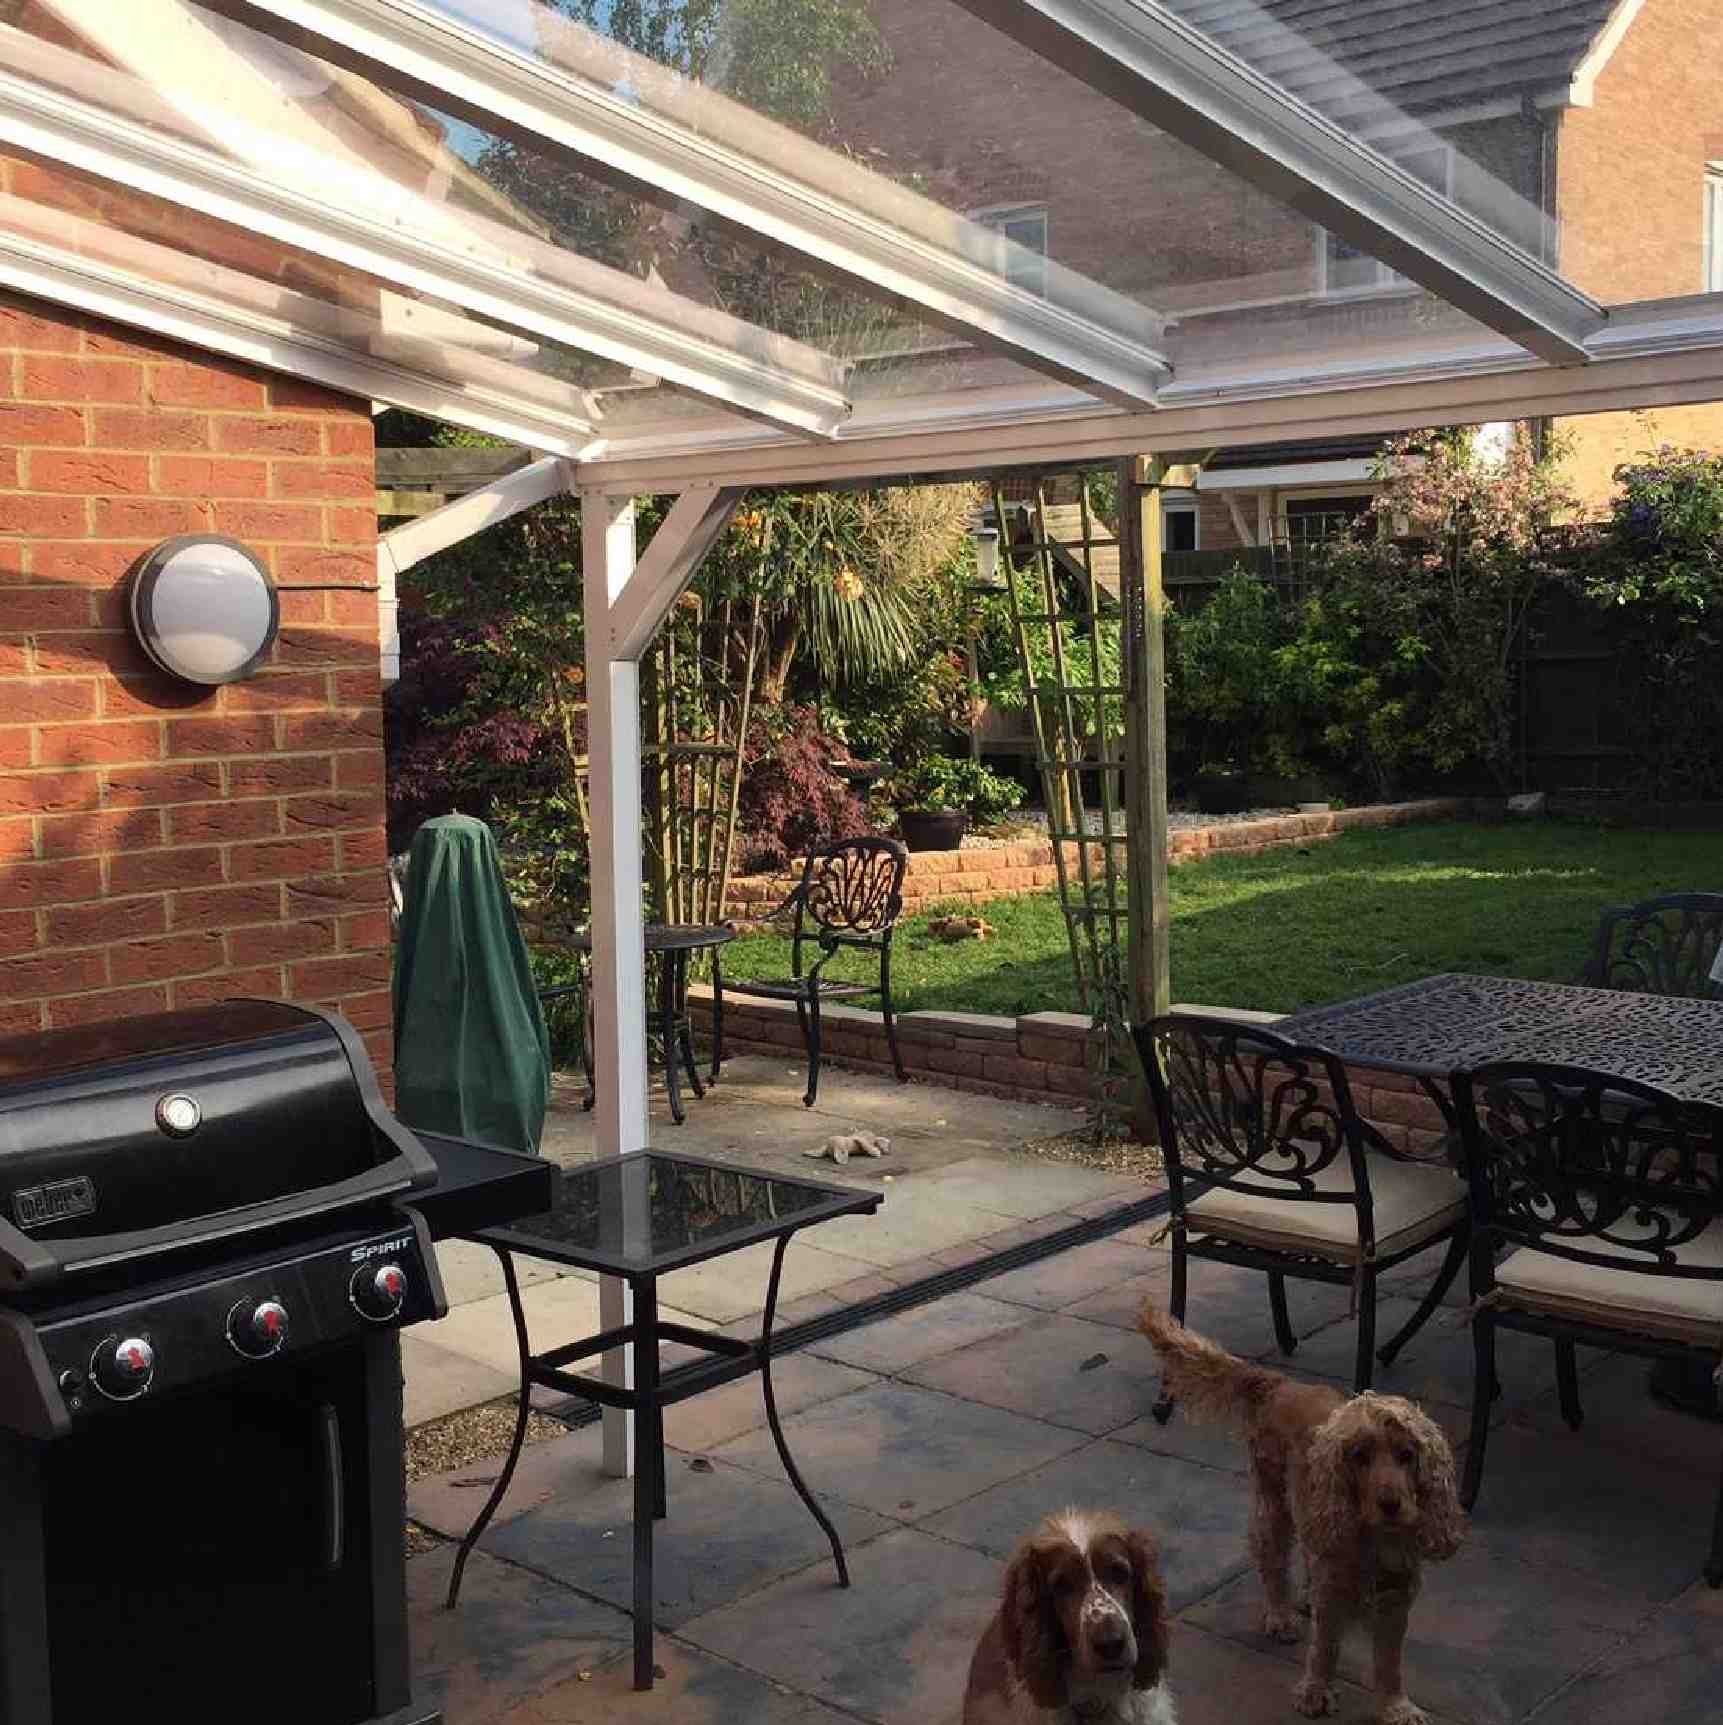 Omega Verandah with 16mm Polycarbonate Glazing - 2.8m (W) x 4.0m(P), (2) Supporting Posts